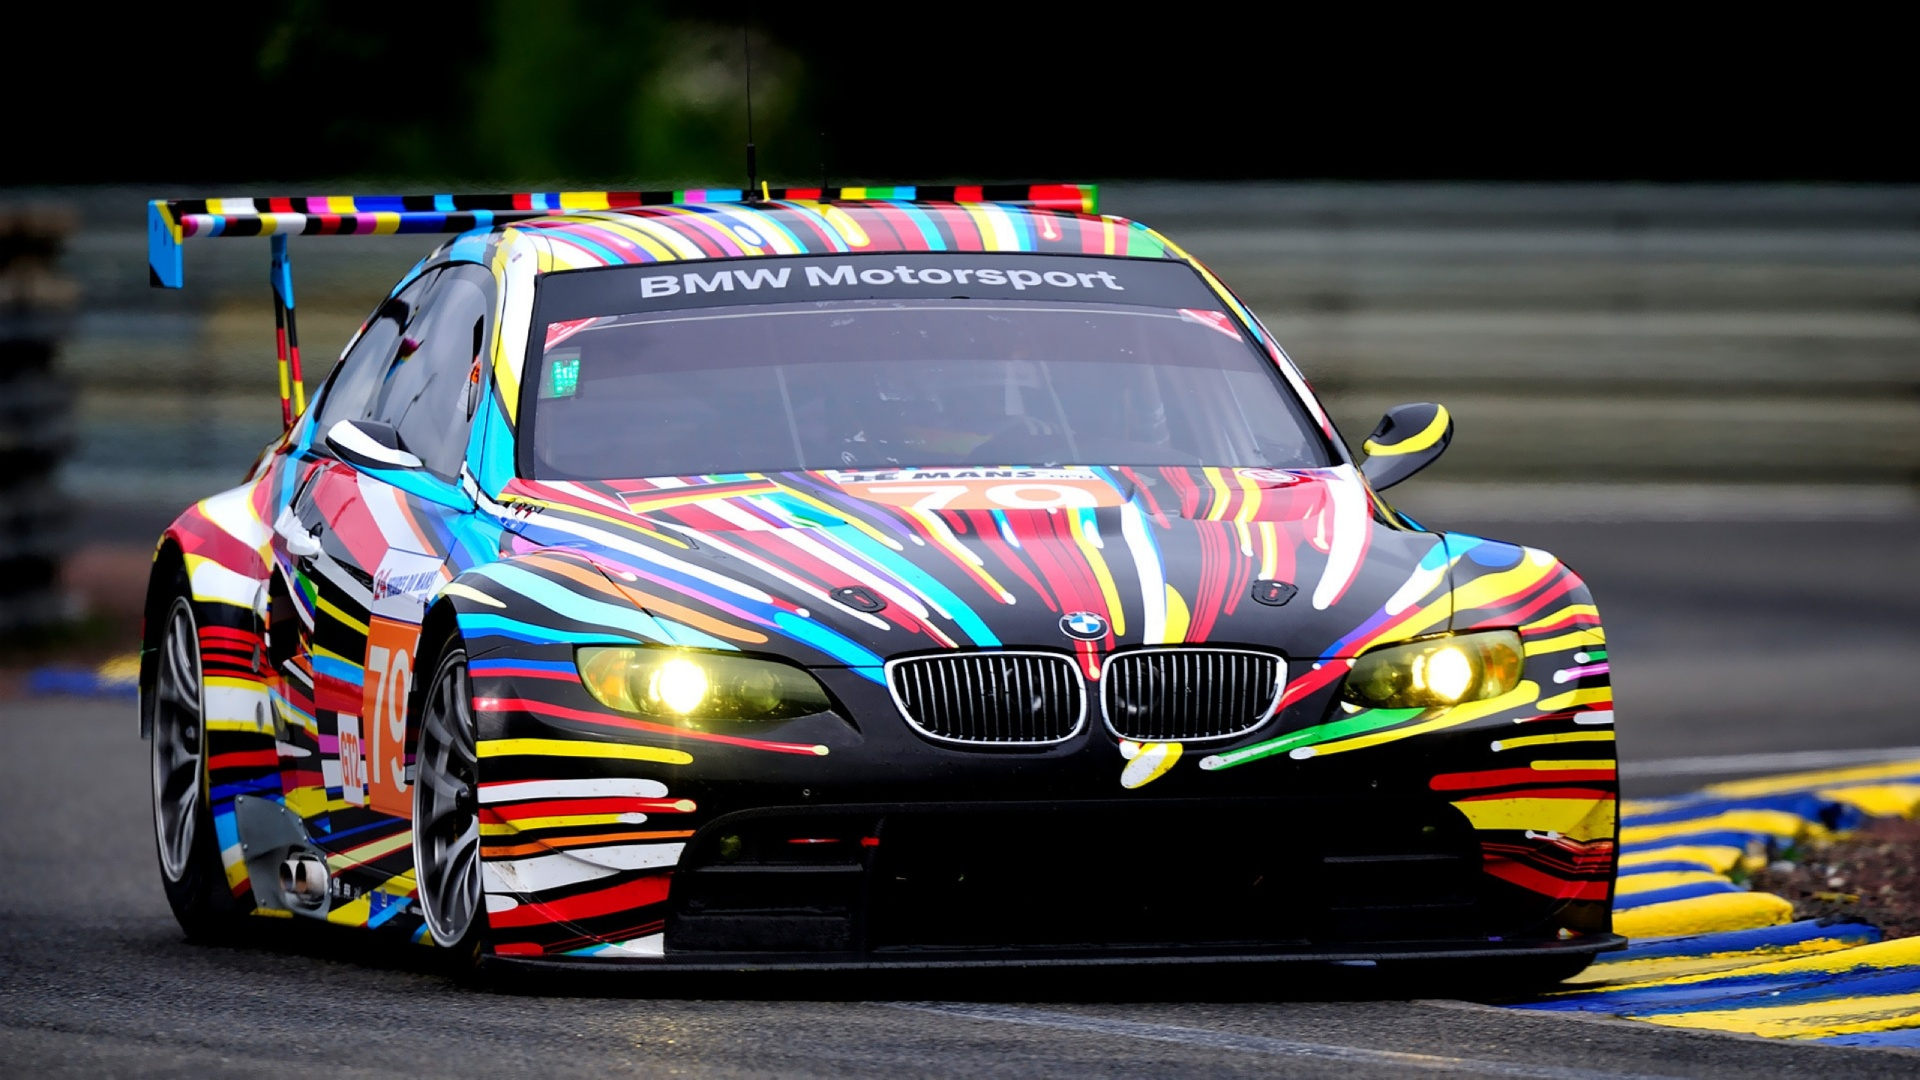 ... HD Wallpaper Download 1 Customized Bmw Wallpaper ...